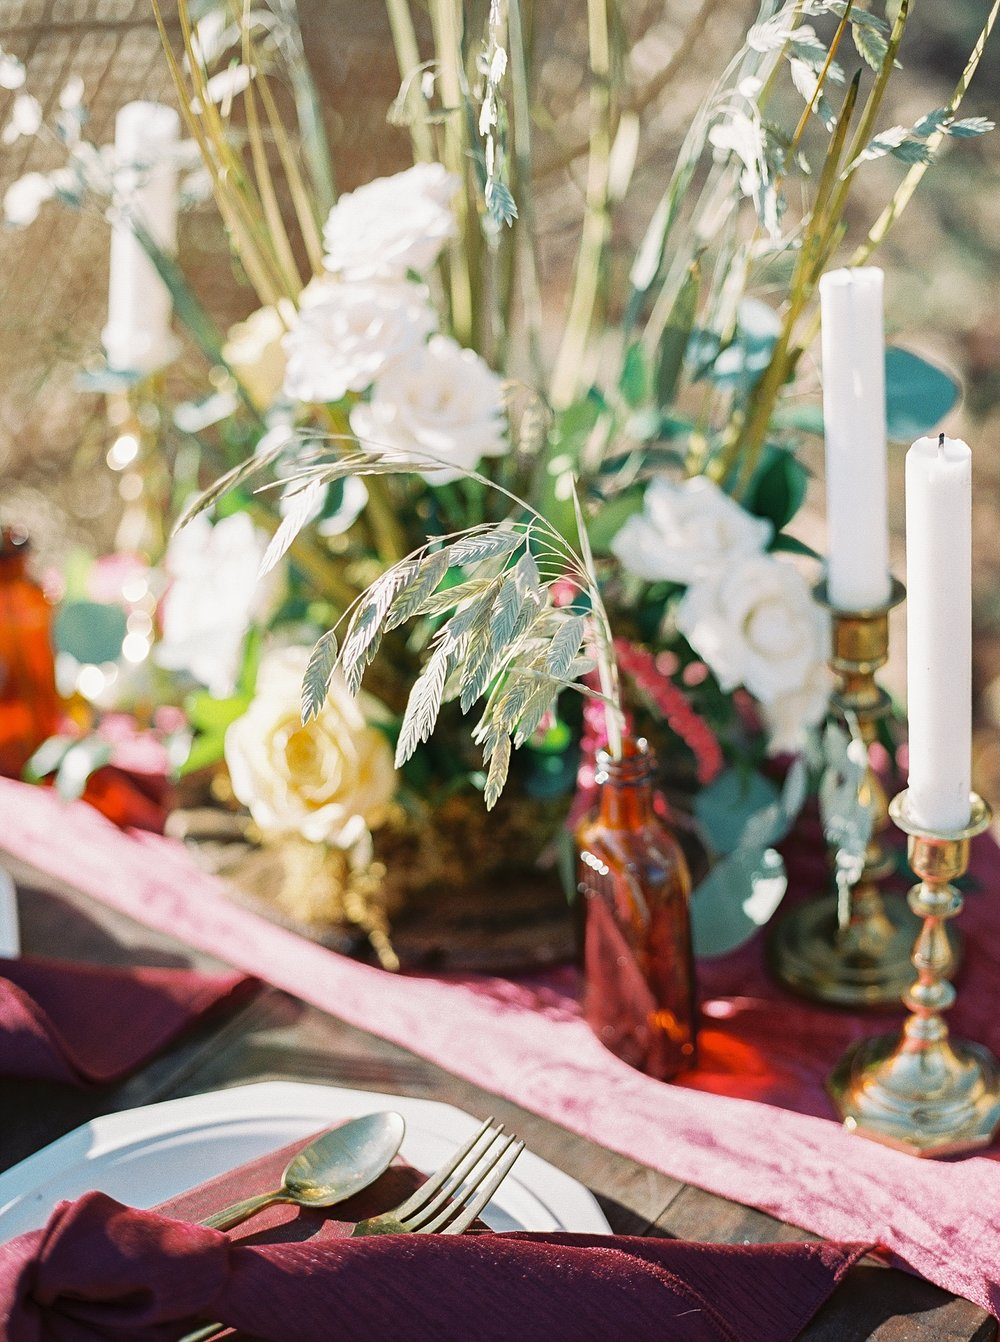 Snowy Winter Wedding at Wildcliff Events Lake With Earthy Jewel Tones and Organic Refined Style by Kelsi Kliethermes Photography Kansas City Missouri Wedding Photographer_0147.jpg